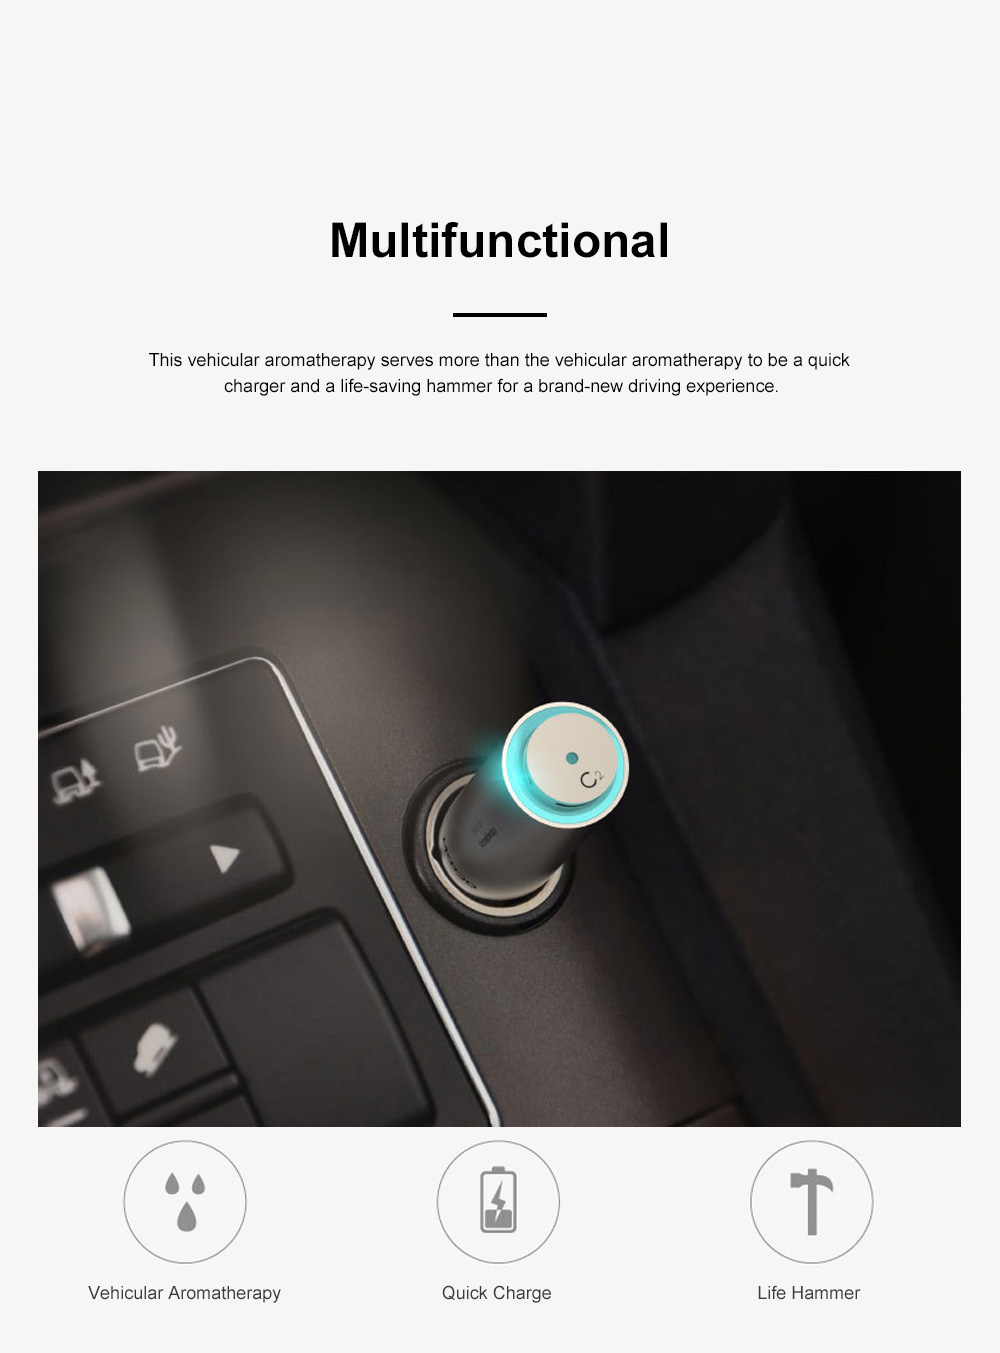 MKODO Multifunctional Vehicular Aromatherapy for Inside Car Use Three-in-one Aroma USB Plug Excellent Life-saving Hammer Car Charger 7